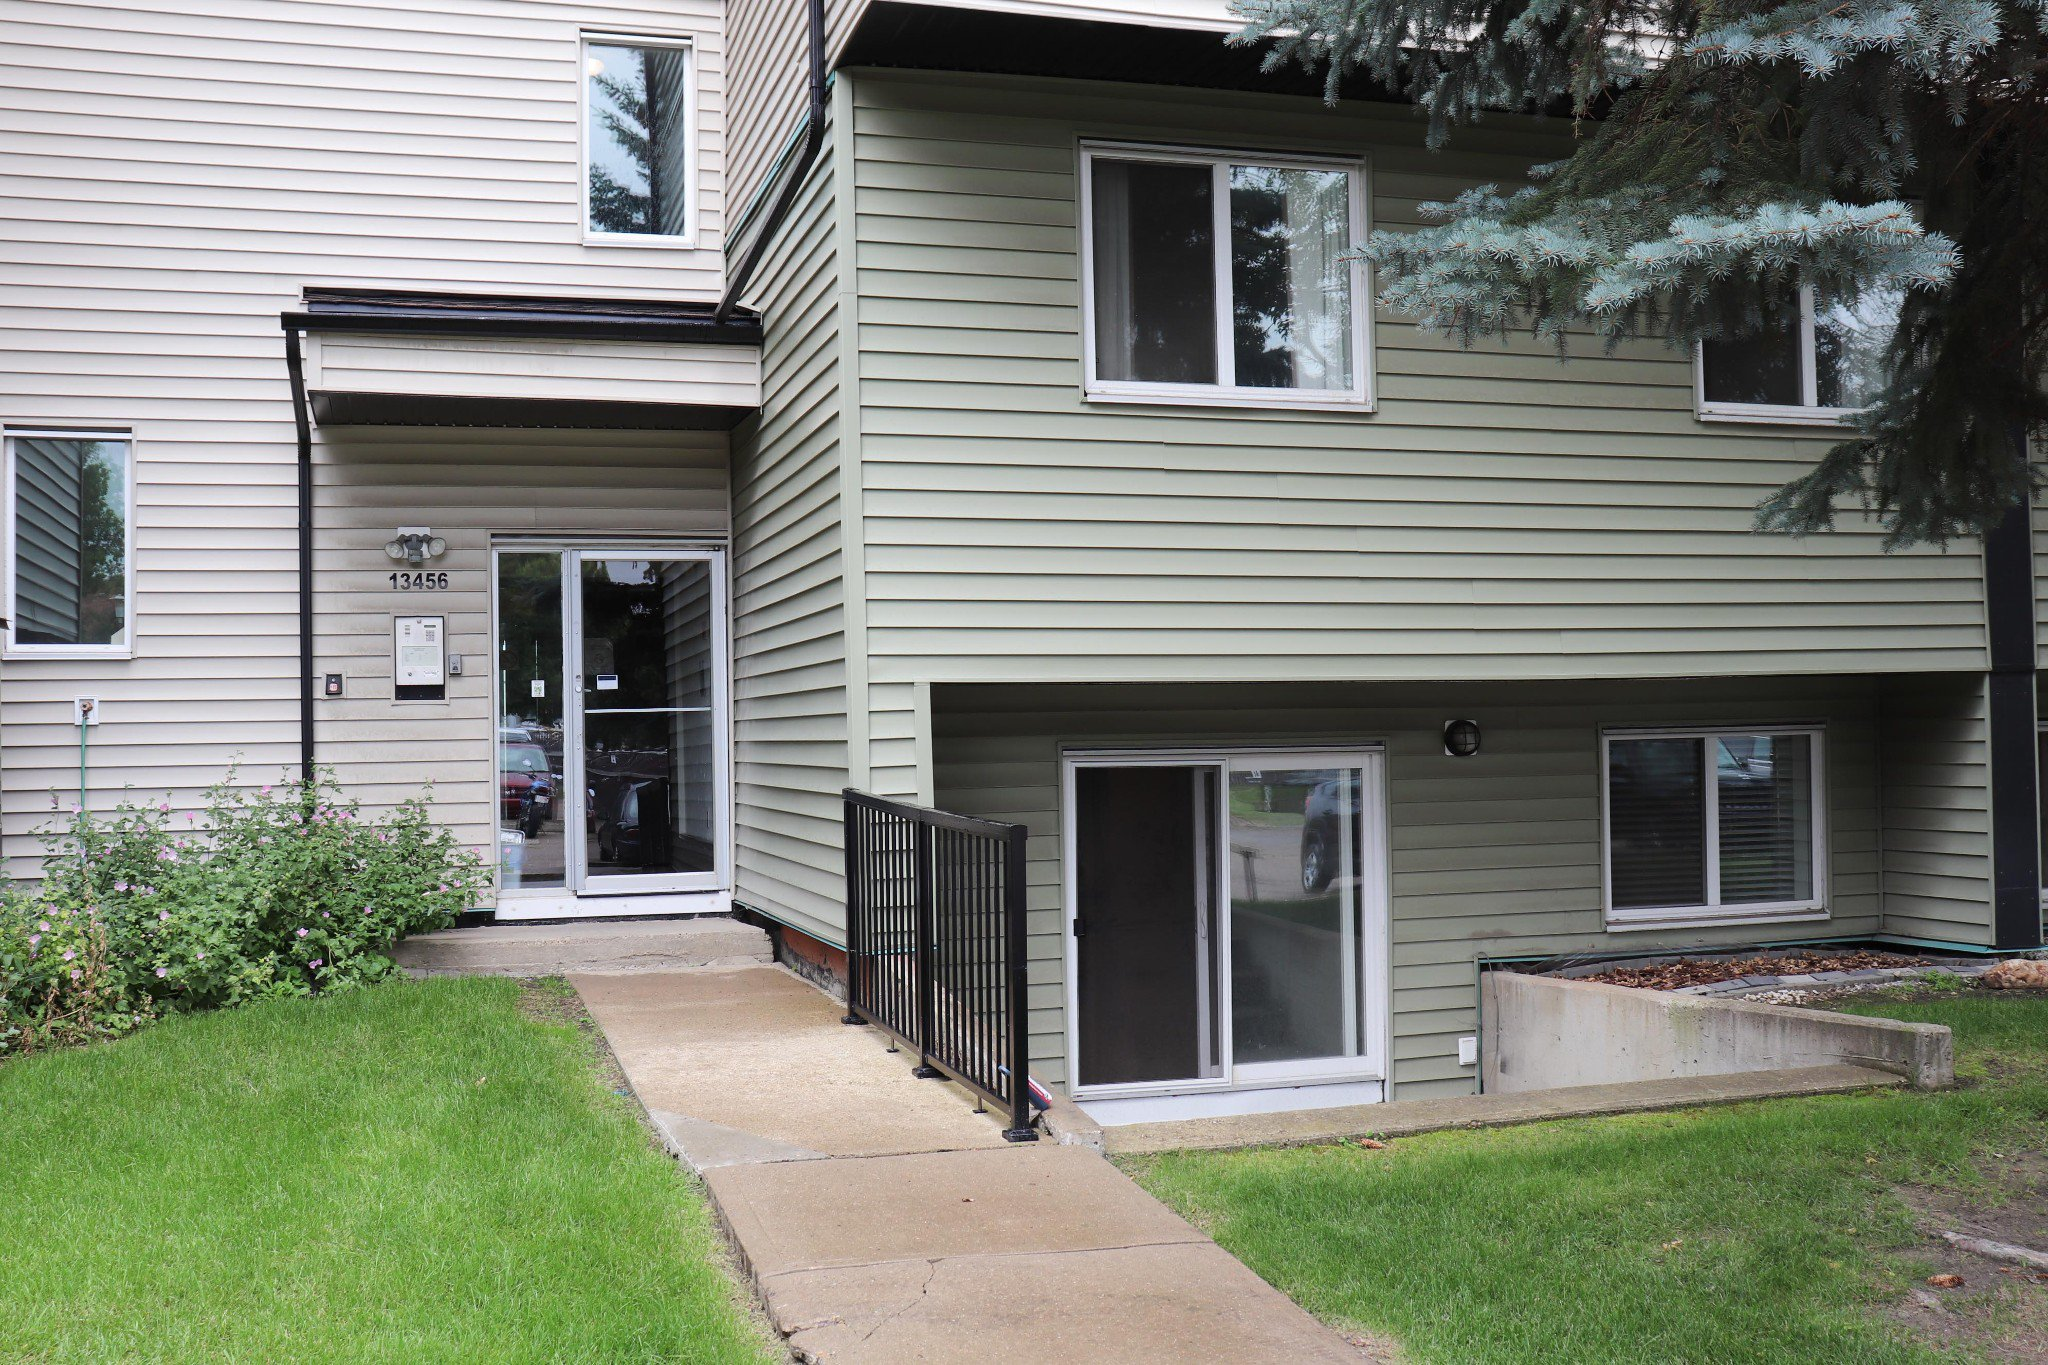 Main Photo: #4 13456 Fort Rd in Edmonton: Condo for sale